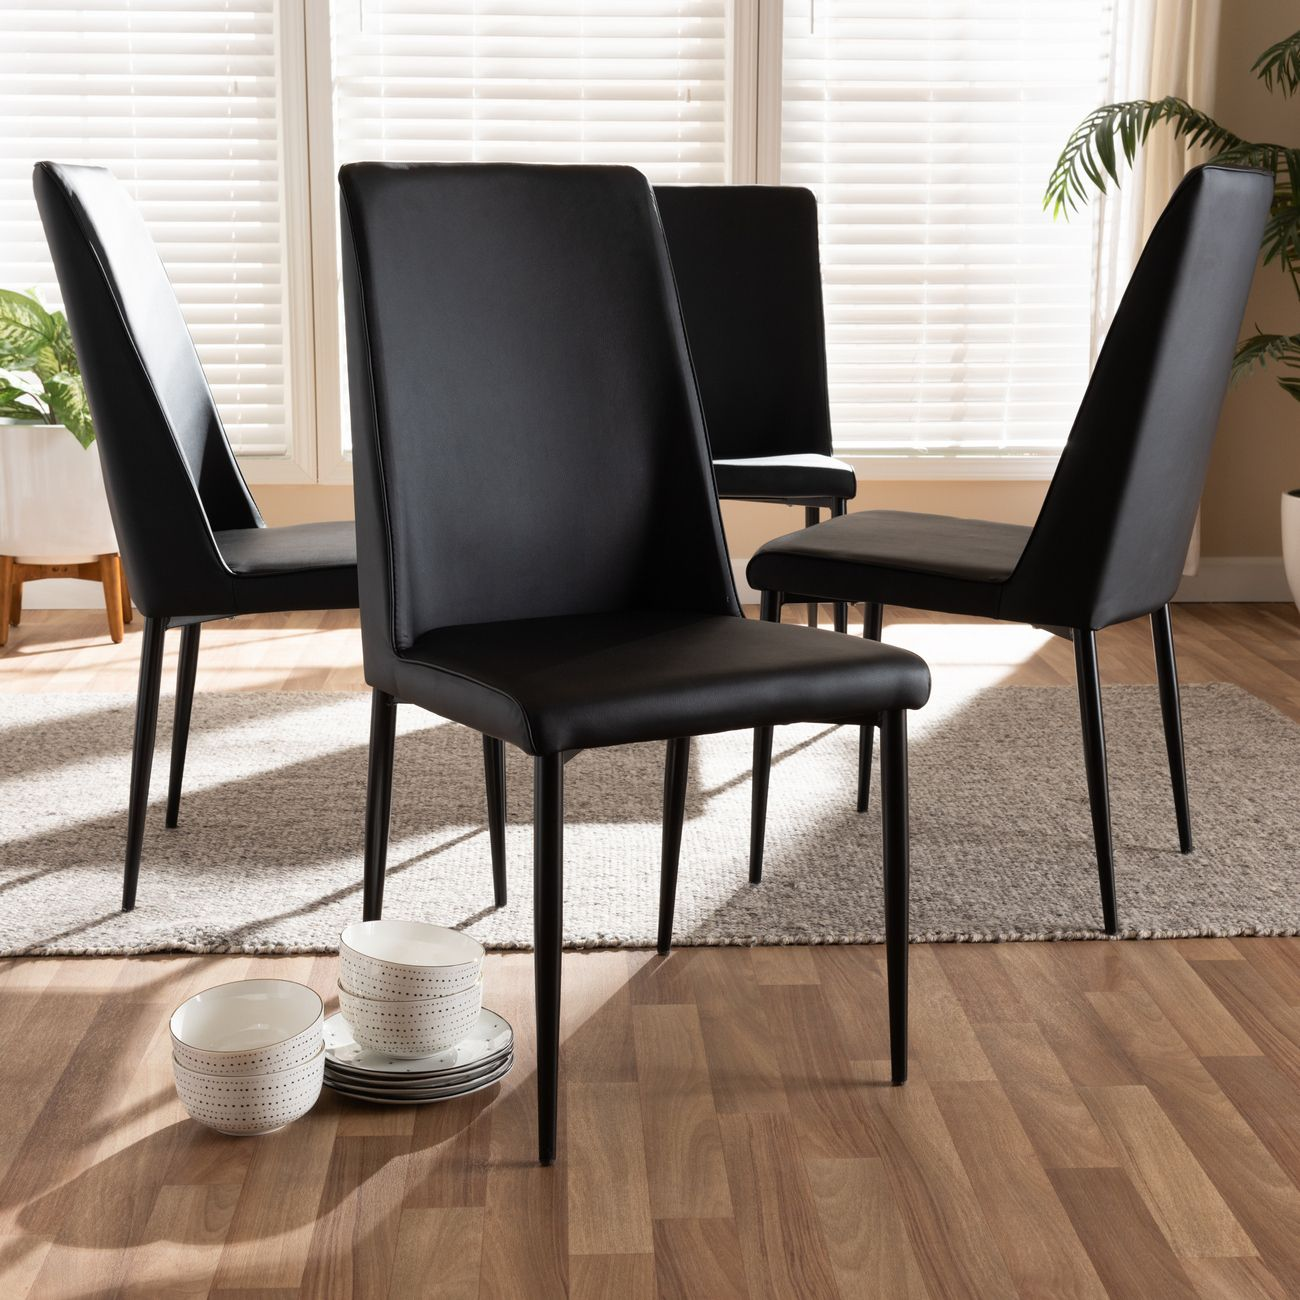 Baxton Studio Chandelle Modern Contemporary Black Faux Leather Upholstered Dining Chair Set Of 4 160505 Black